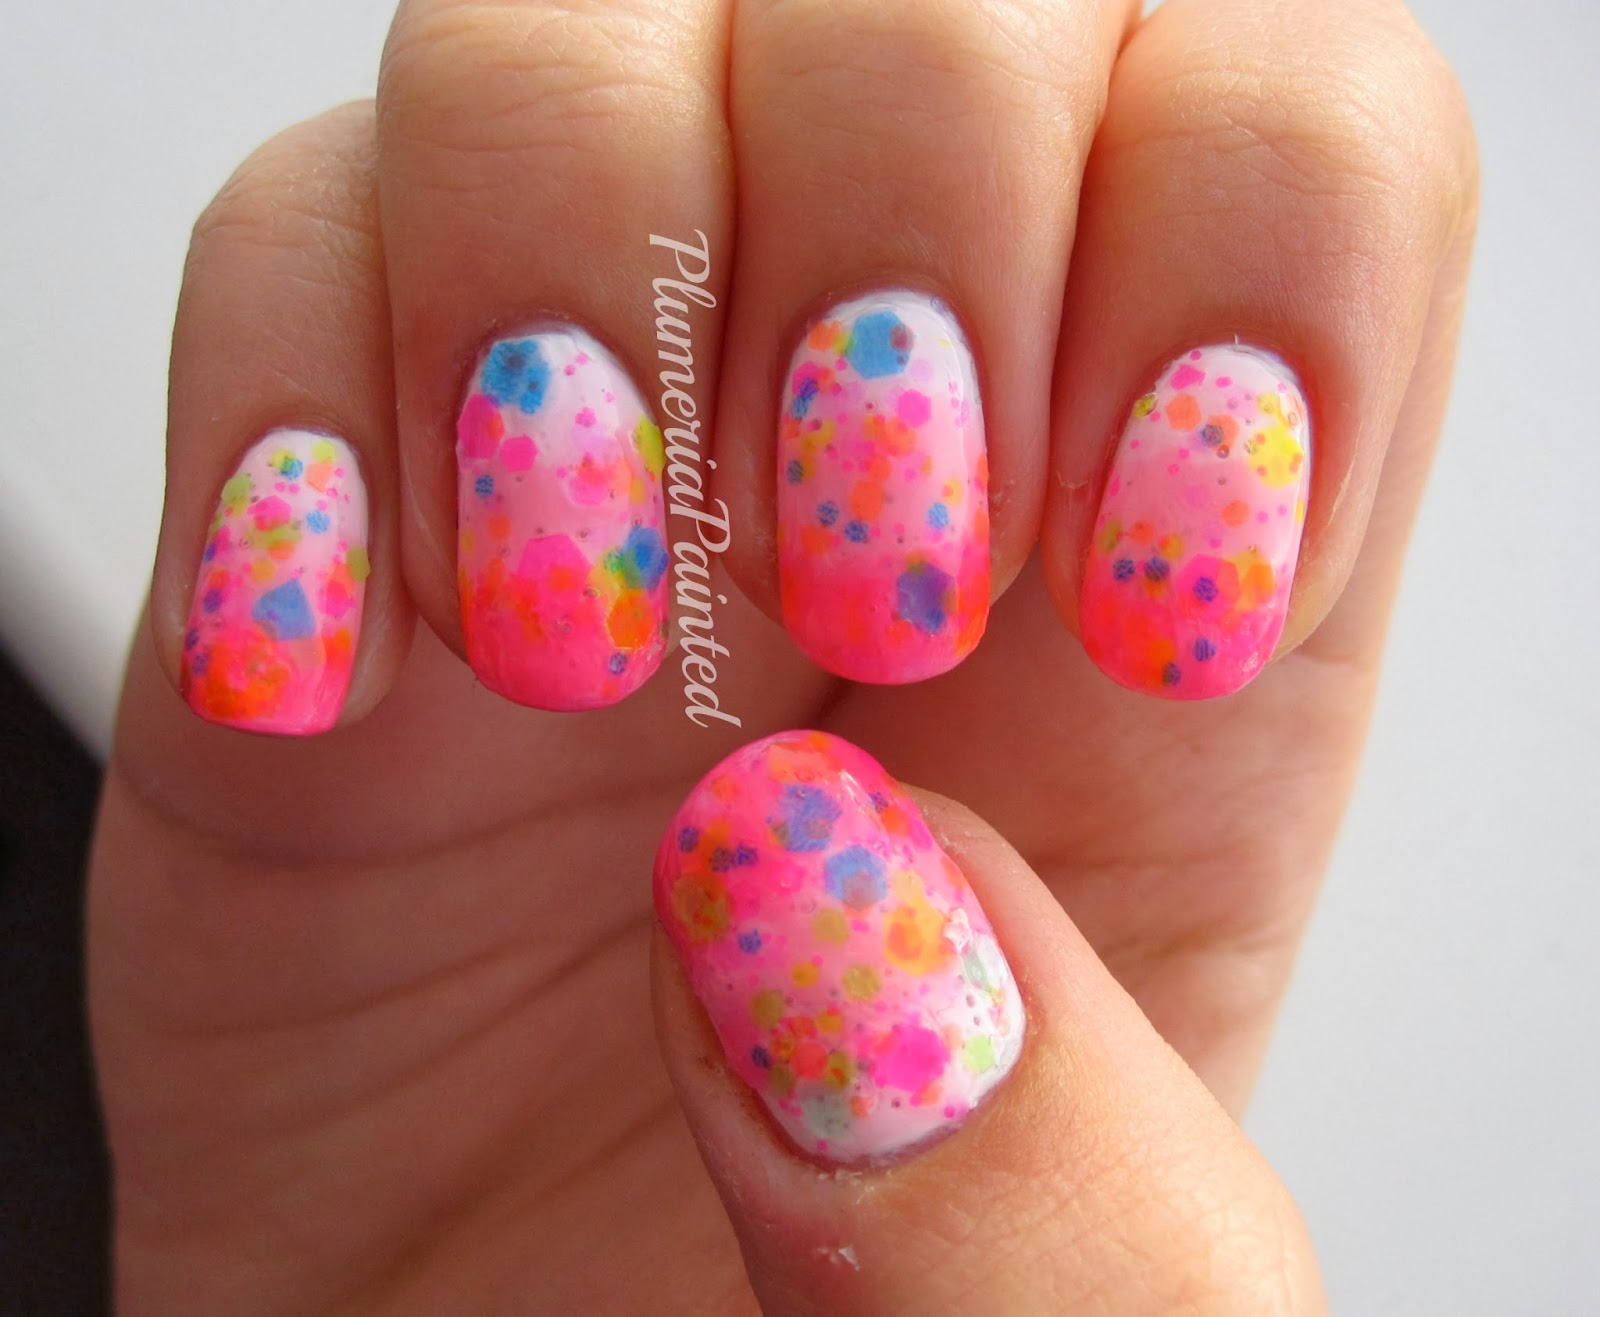 PlumeriaPainted: Pink Gradient Nails + Neon Glitter